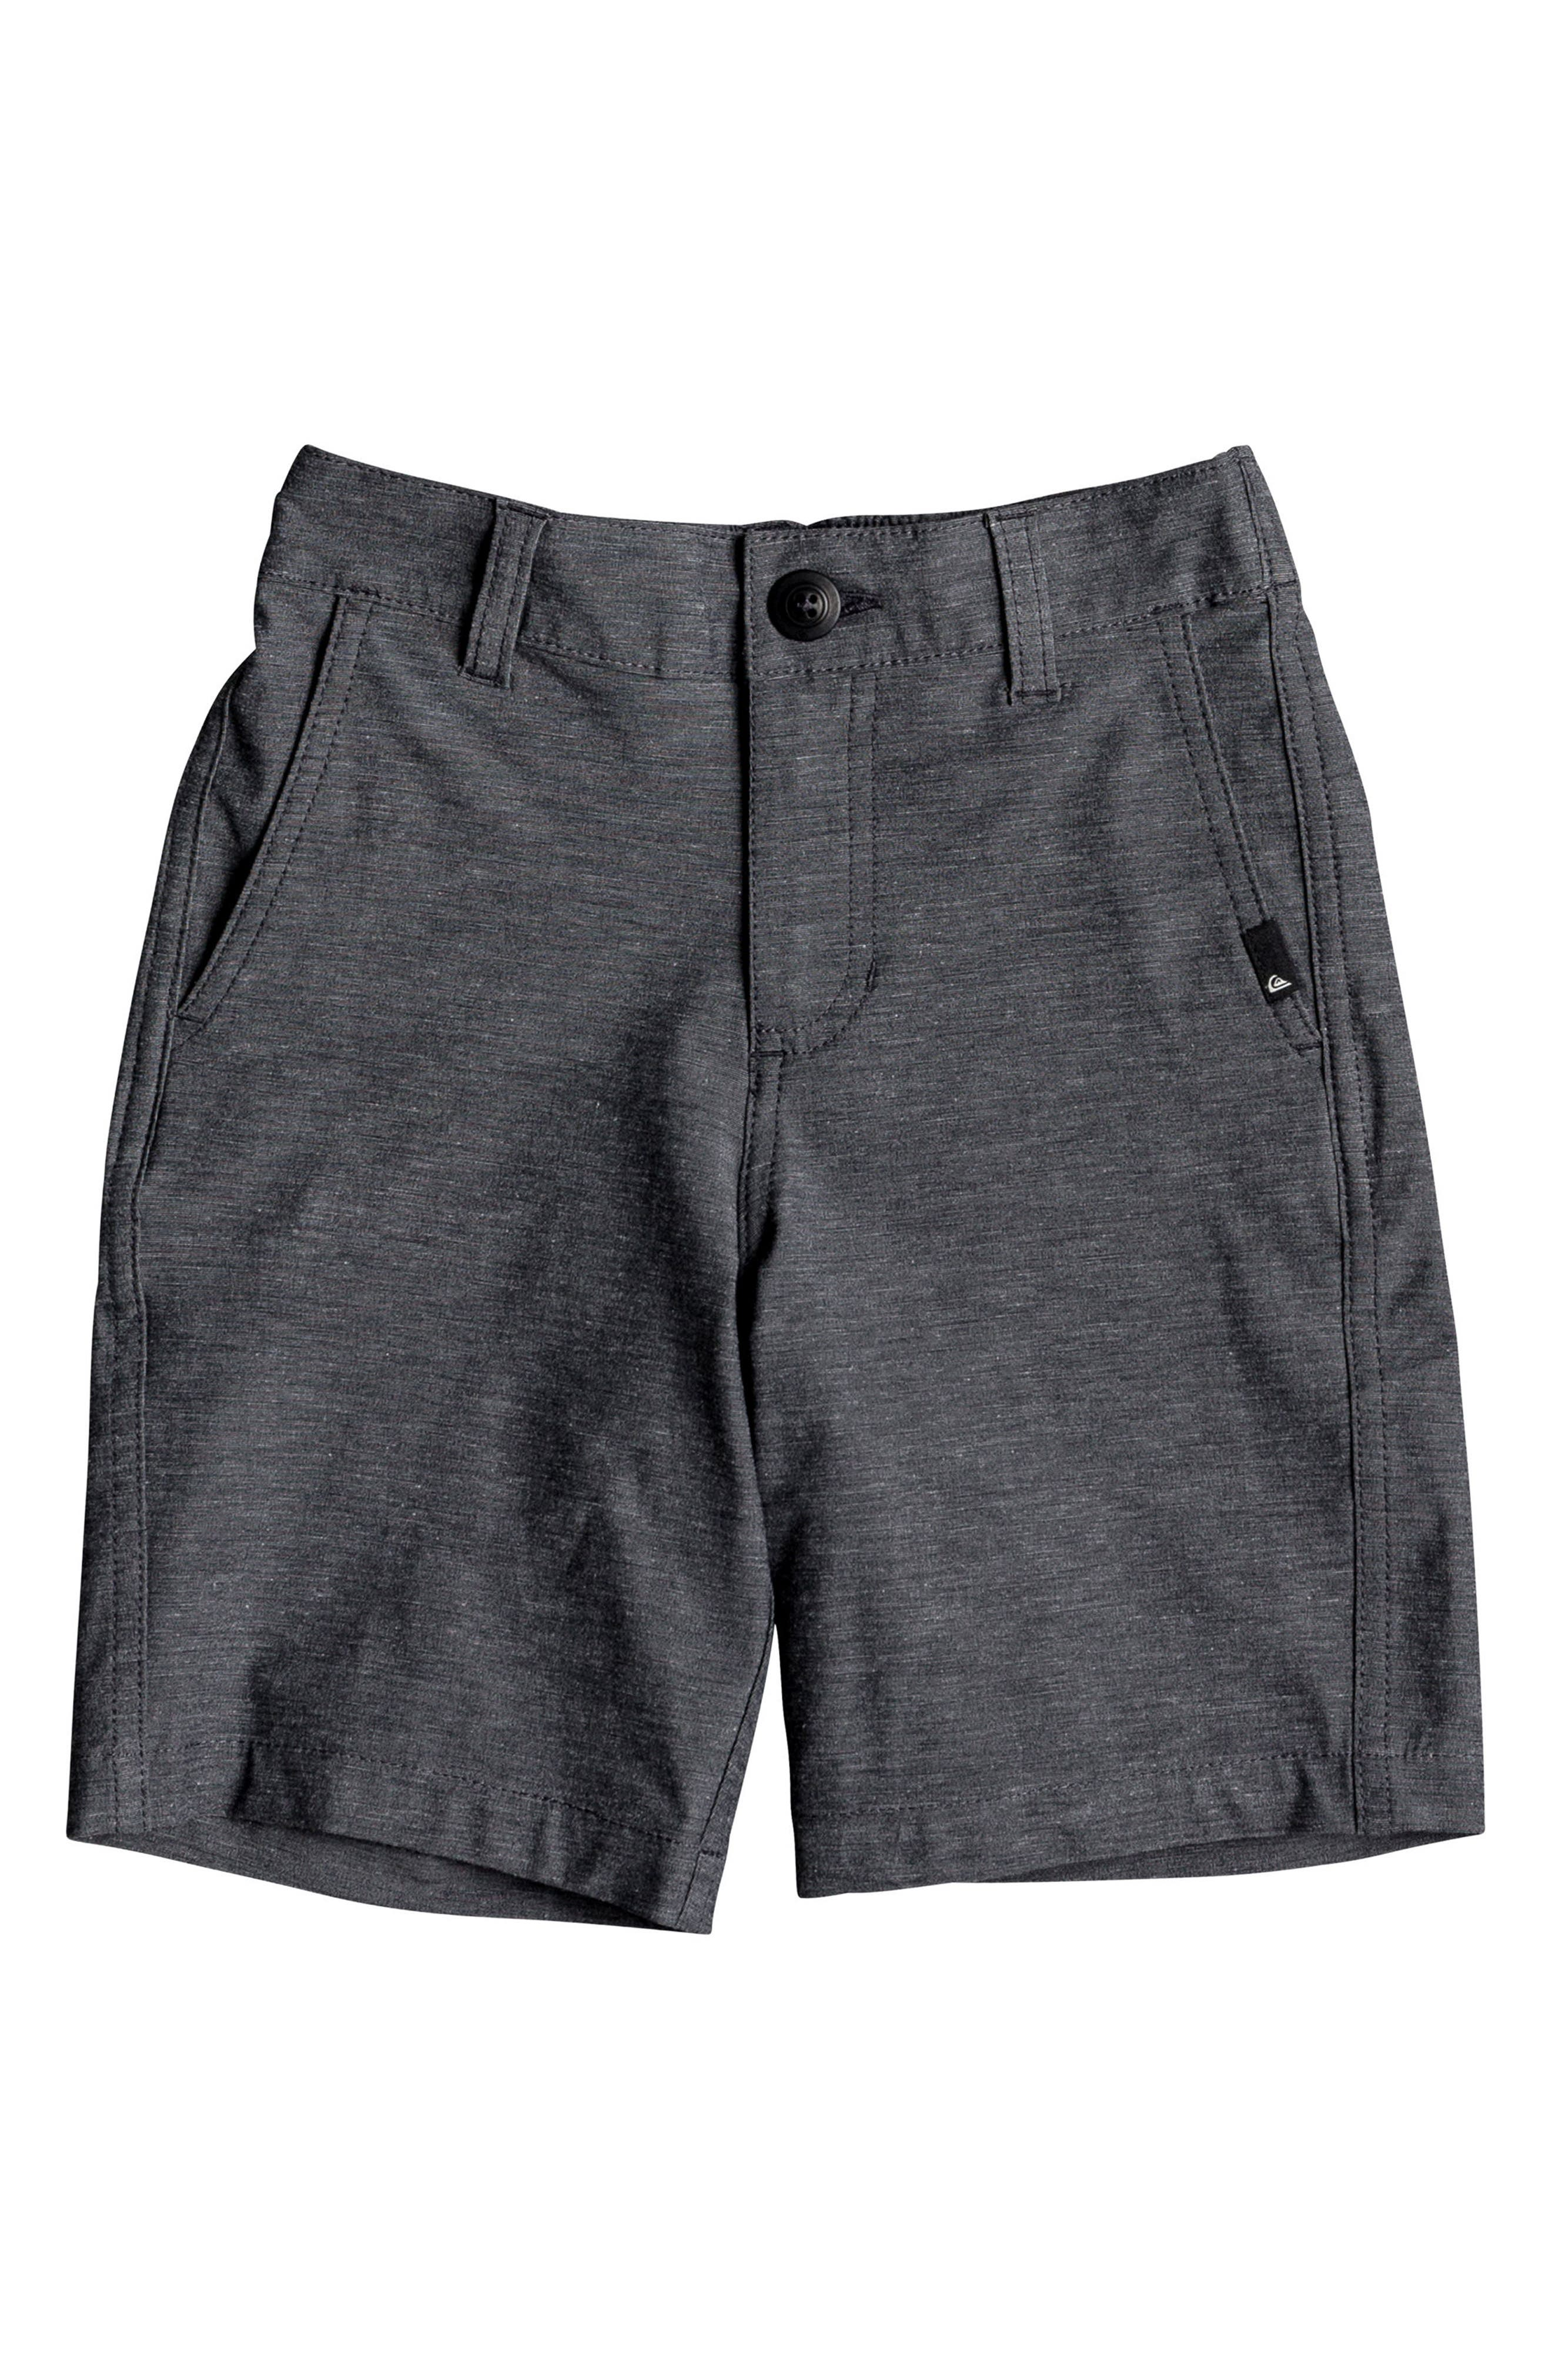 Alternate Image 1 Selected - Quiksilver Union Heather Amphibian Board Shorts (Toddler Boys & Little Boys)